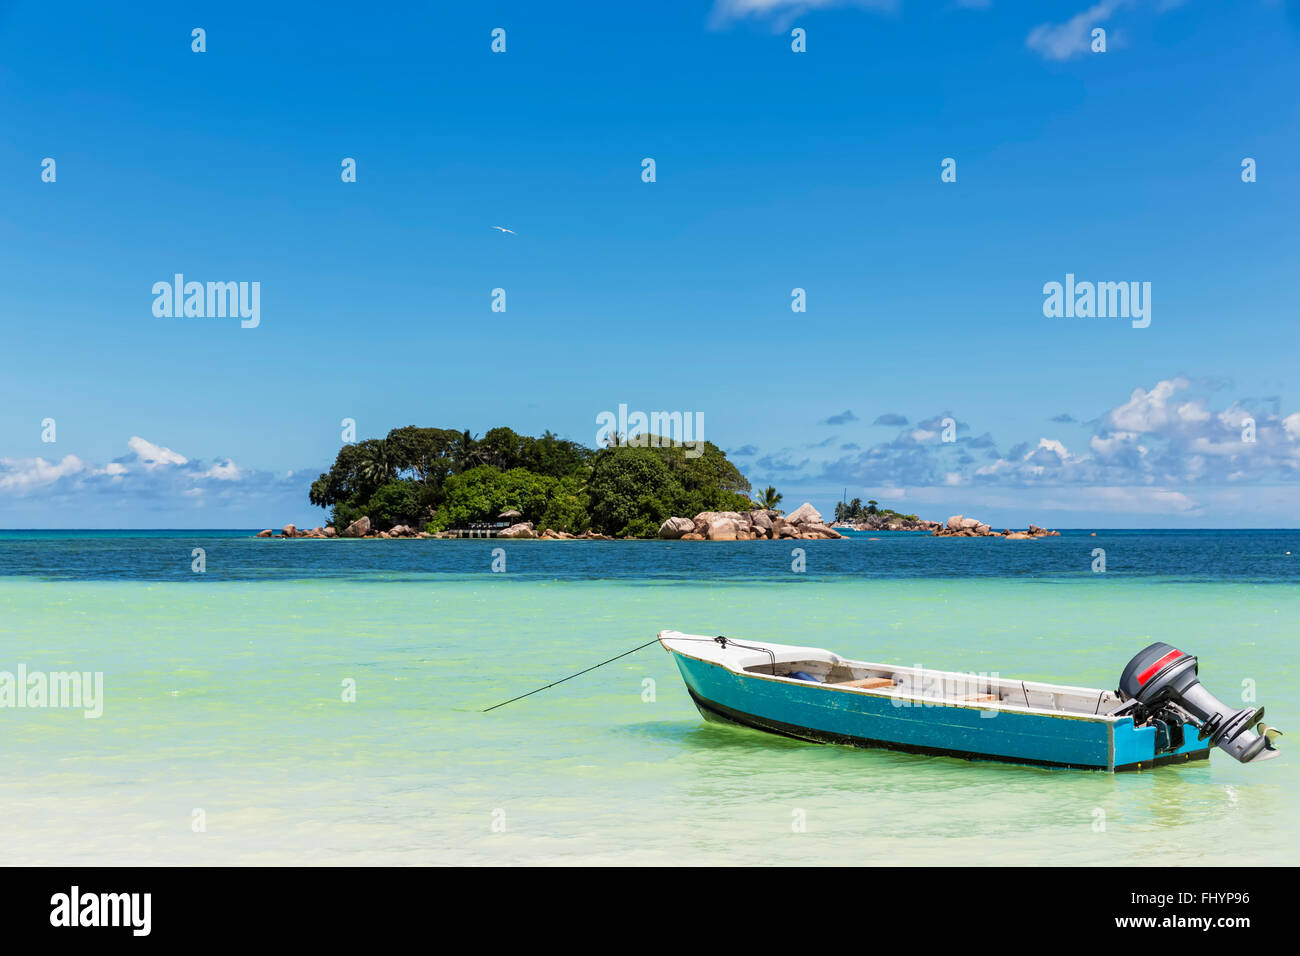 Seychelles, Praslin, Anse Volbert, motorboat, Chauve Souris Island and Saint Pierre Stock Photo